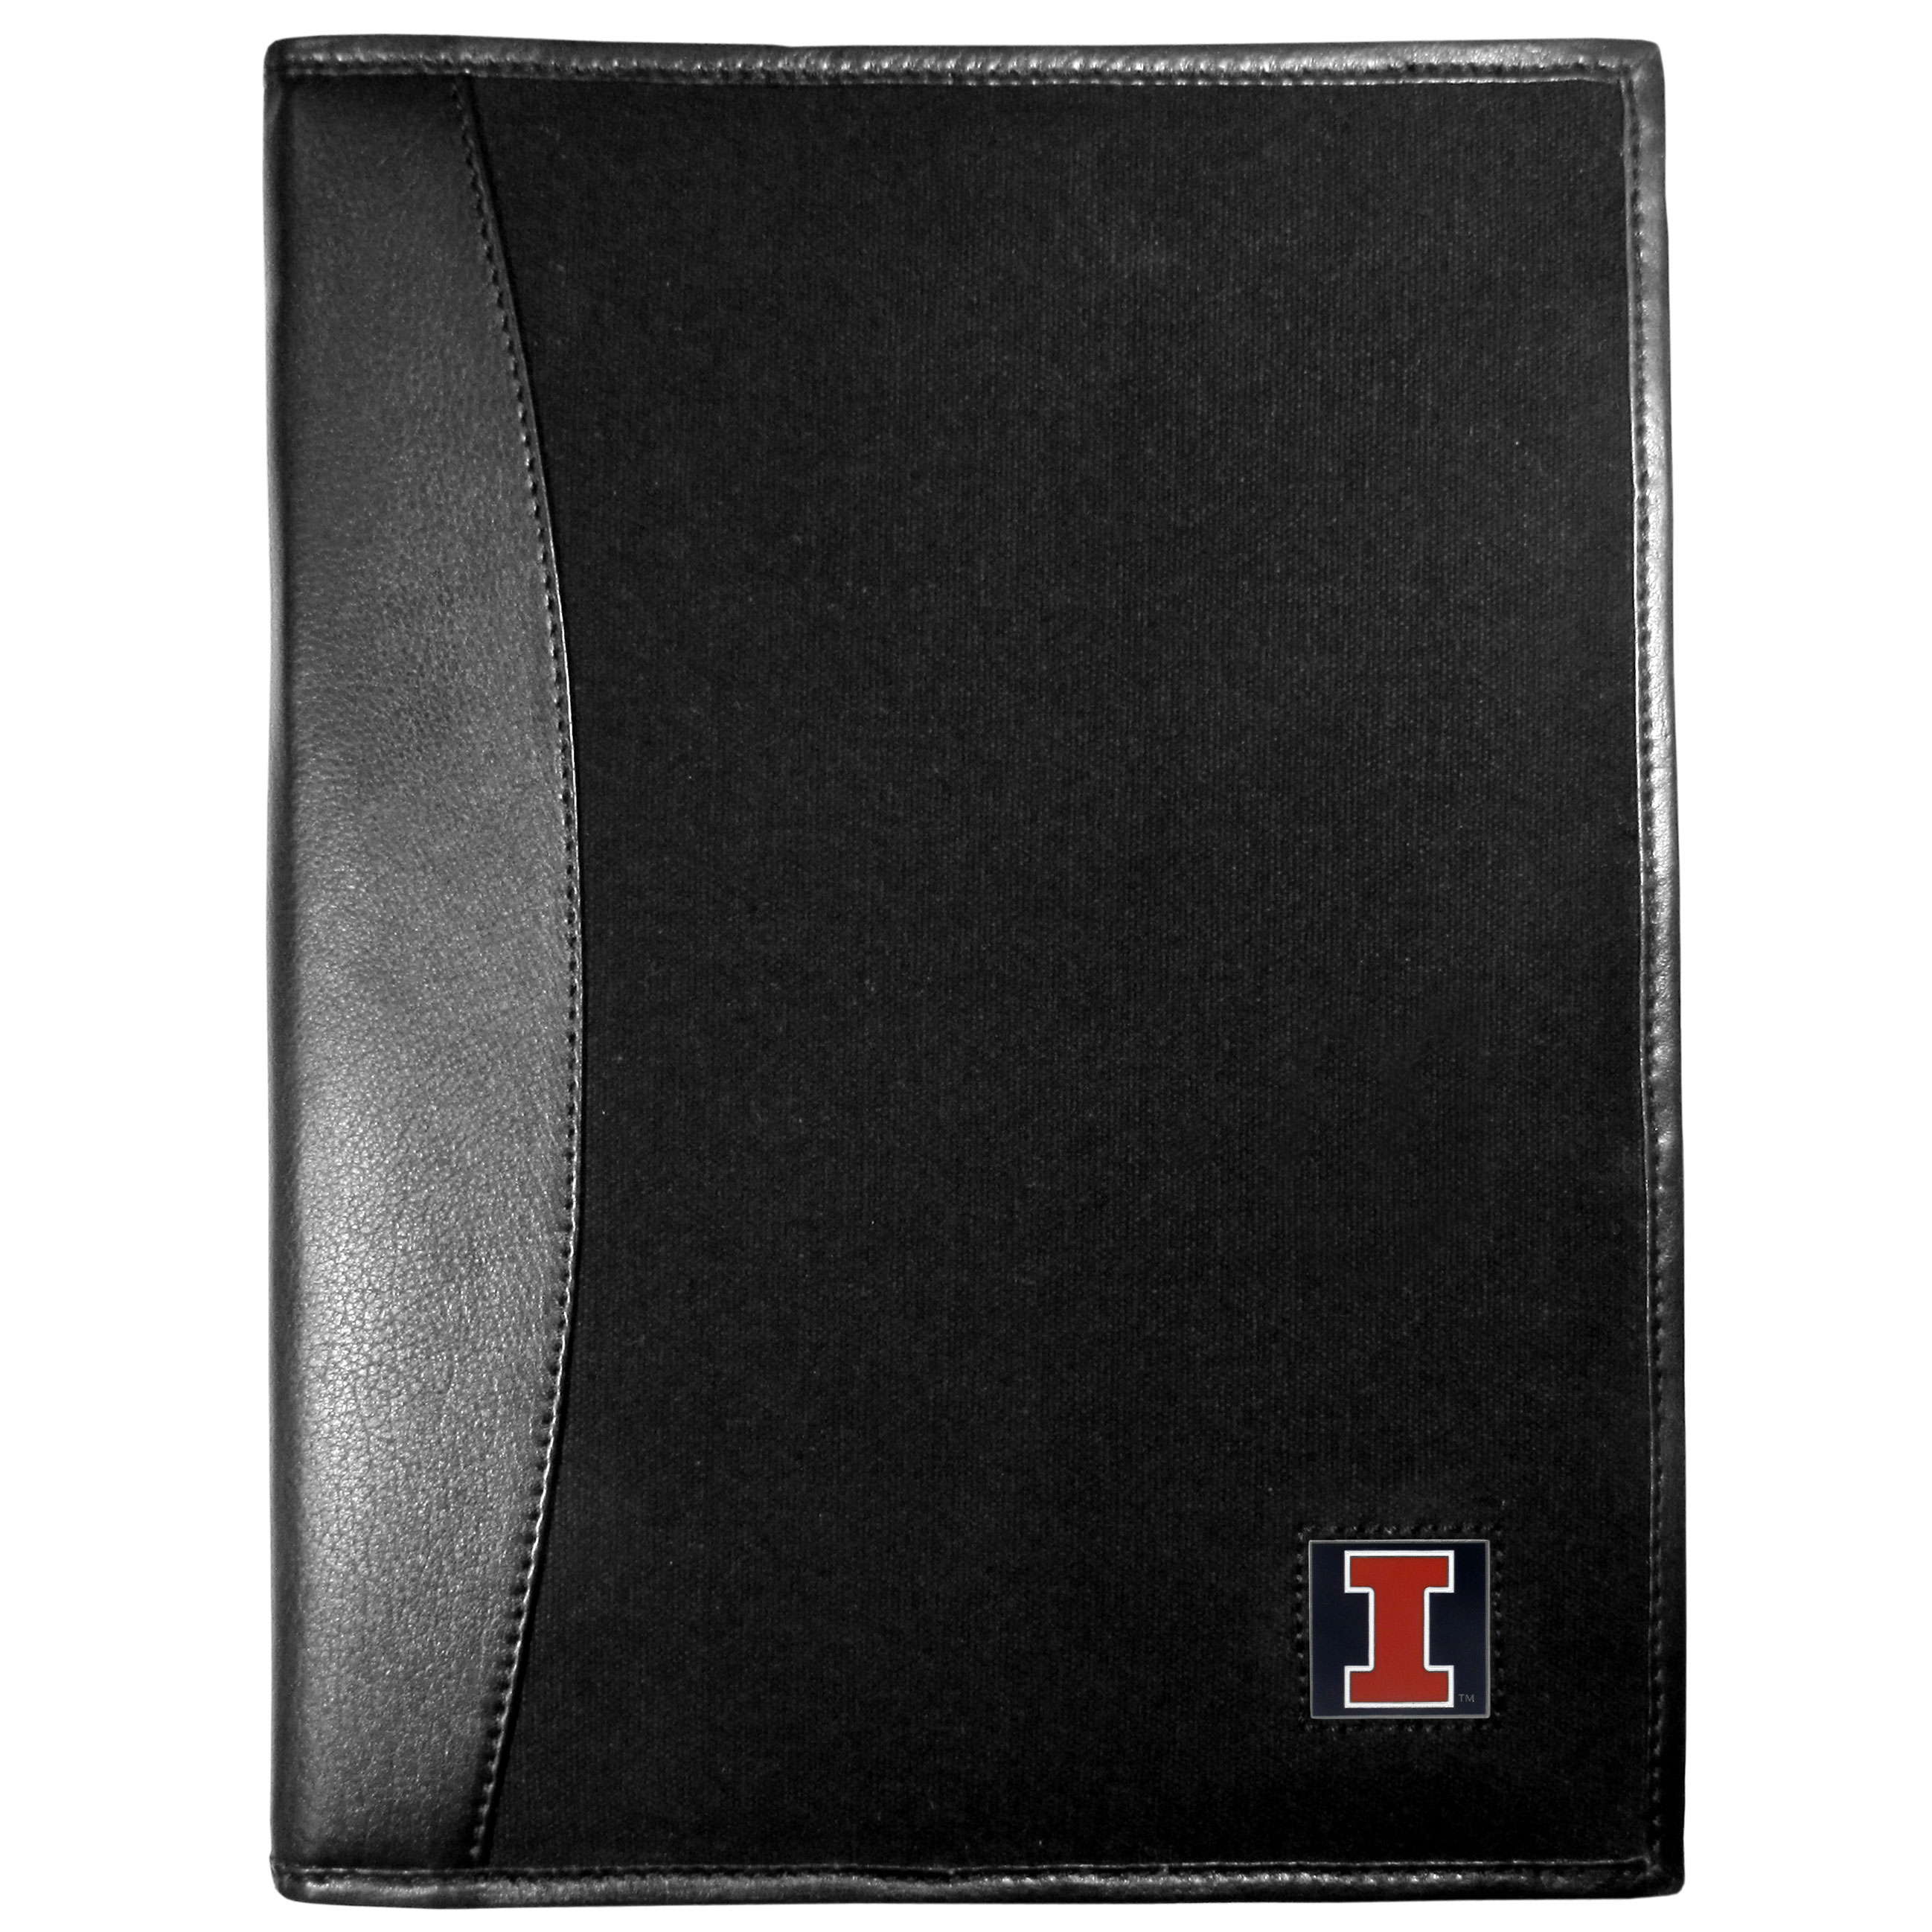 Illinois Fighting Illini Leather and Canvas Padfolio - Our leather and canvas padfolio perfectly blends form and function. The attractive portfolio is bound in fine grain leather with an attractive canvas finish and the interior is a soft nylon. This high quality business accessory also features a fully cast metal Illinois Fighting Illini emblem that is subtly set in the corner of the organizer. It is packed with features like 6 card slots for badges, business cards, hotel keys or credit cards and ID with a large pocket for loose papers and a writing tablet slot making it a must-have for the professional on the go.